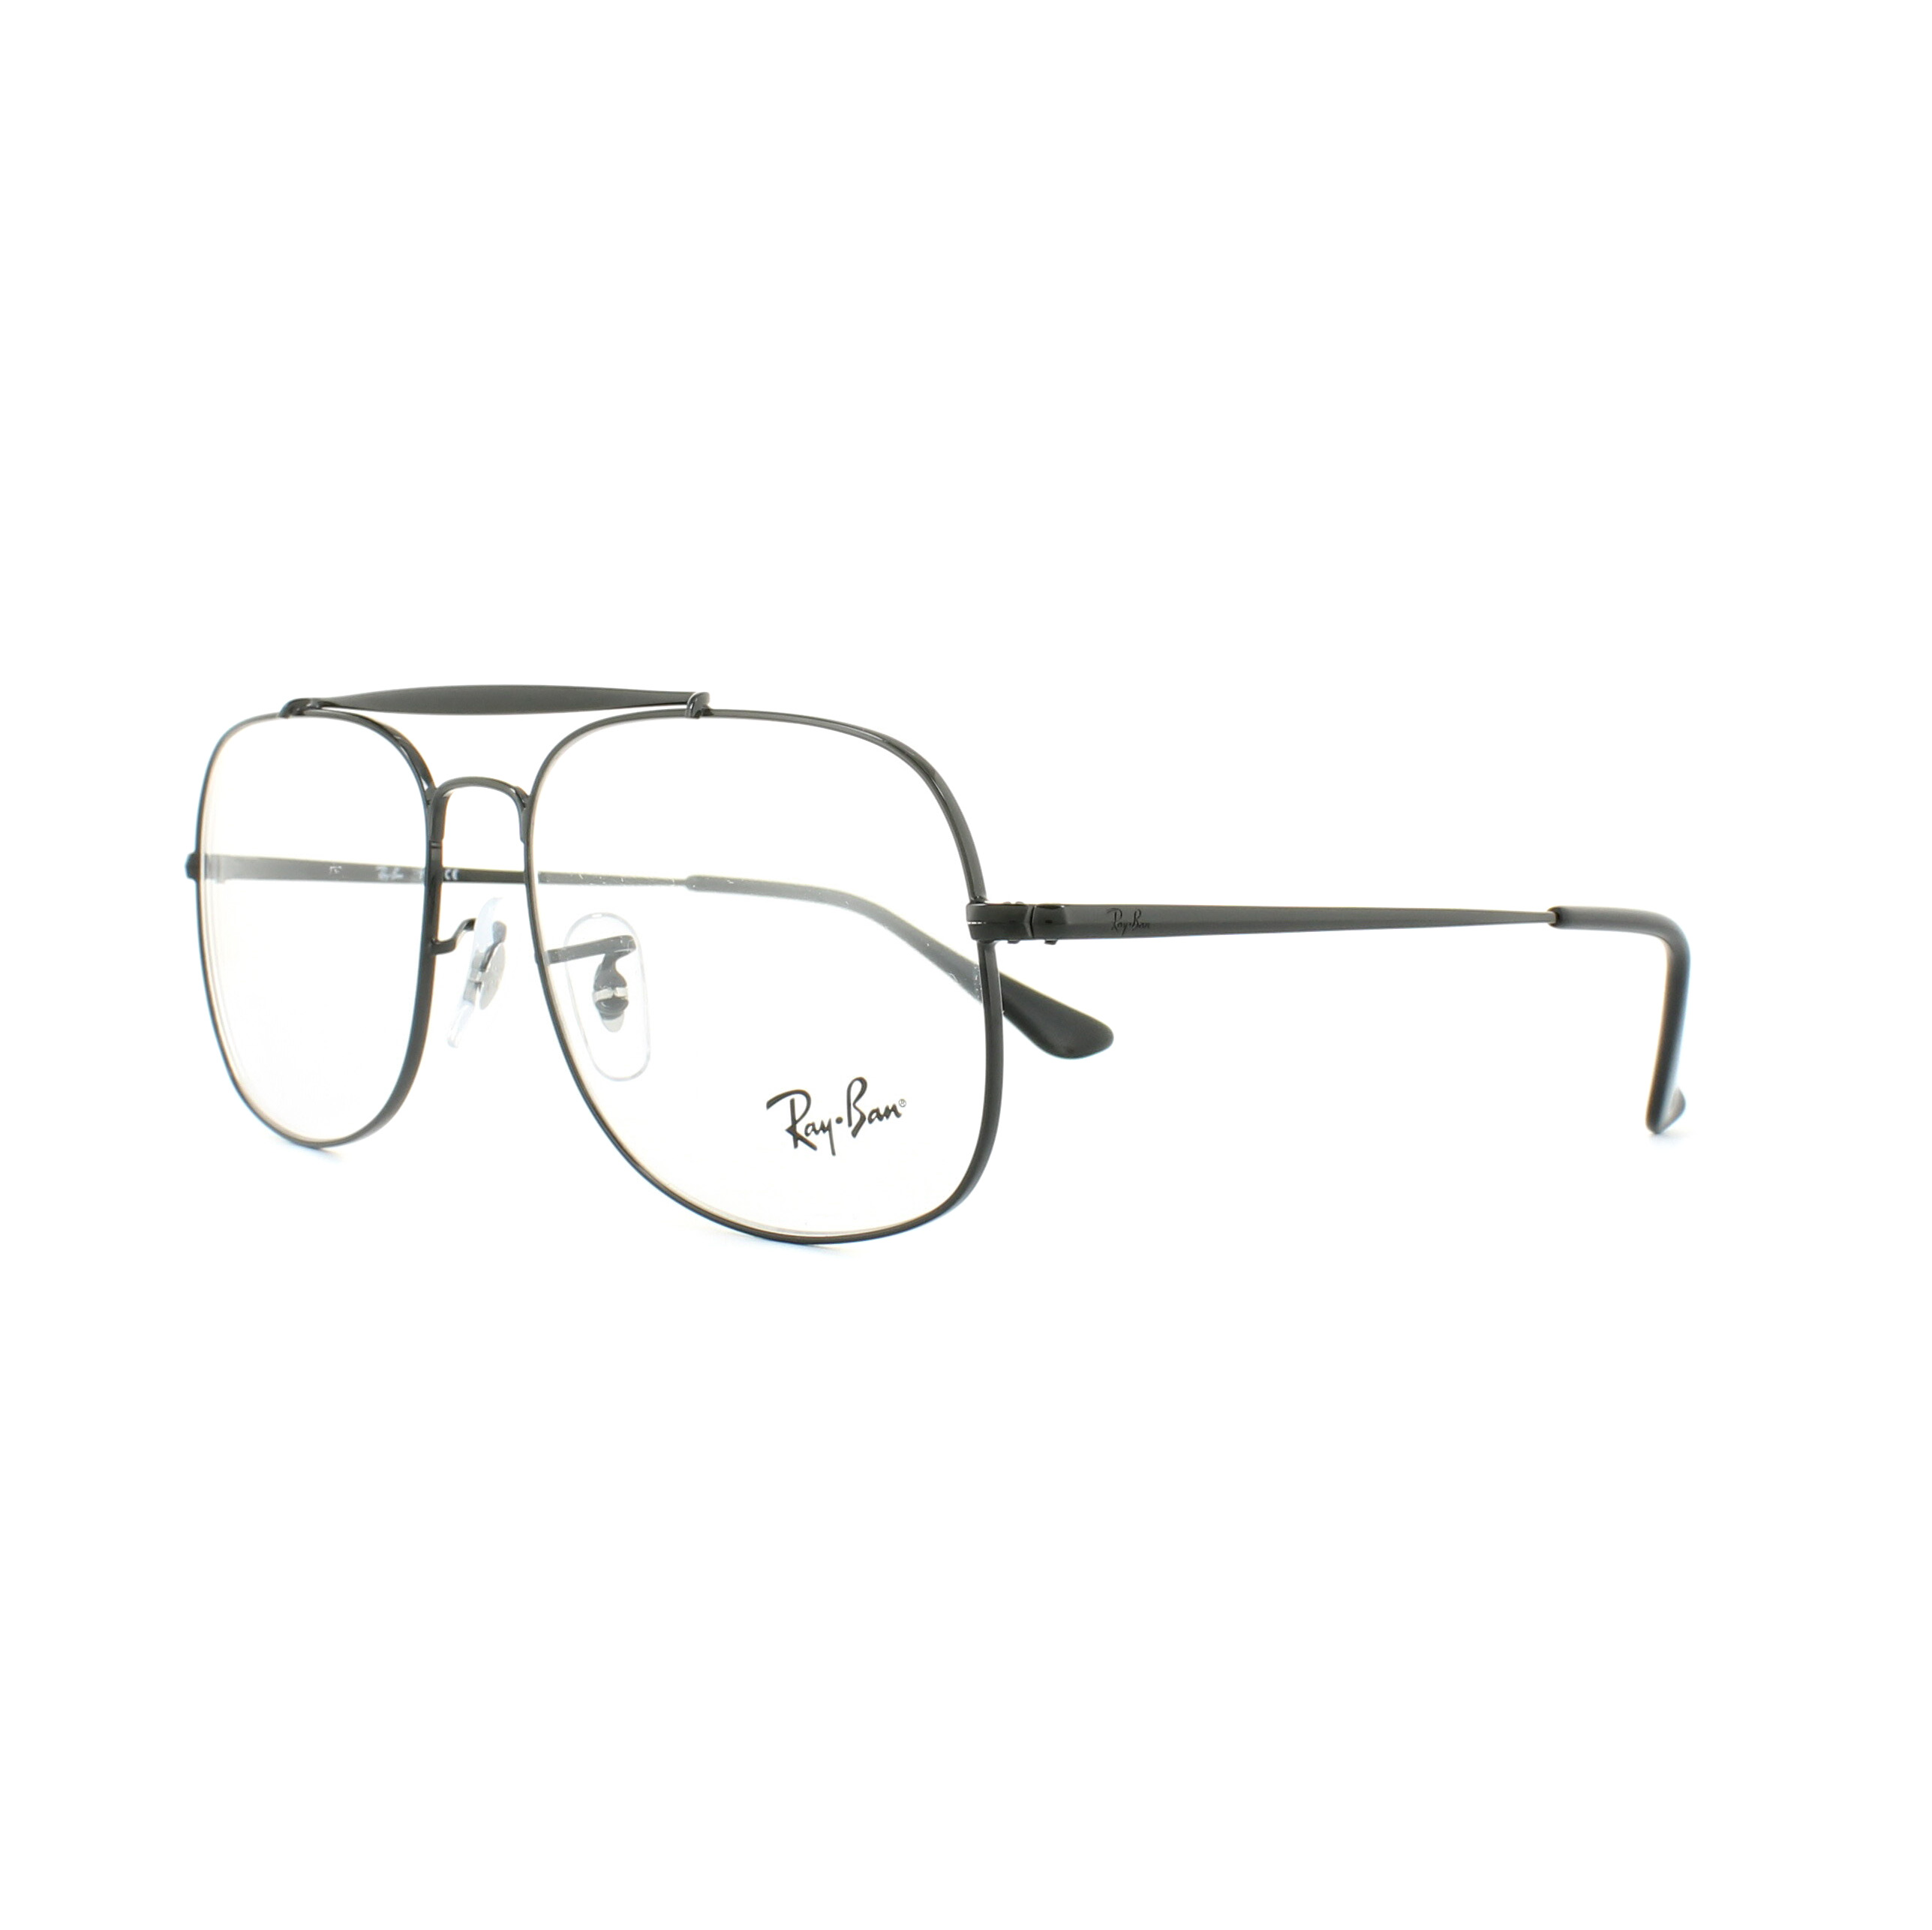 6a4aa5a5b9d Cheap Ray-Ban 6389 The General Glasses Frames - Discounted Sunglasses